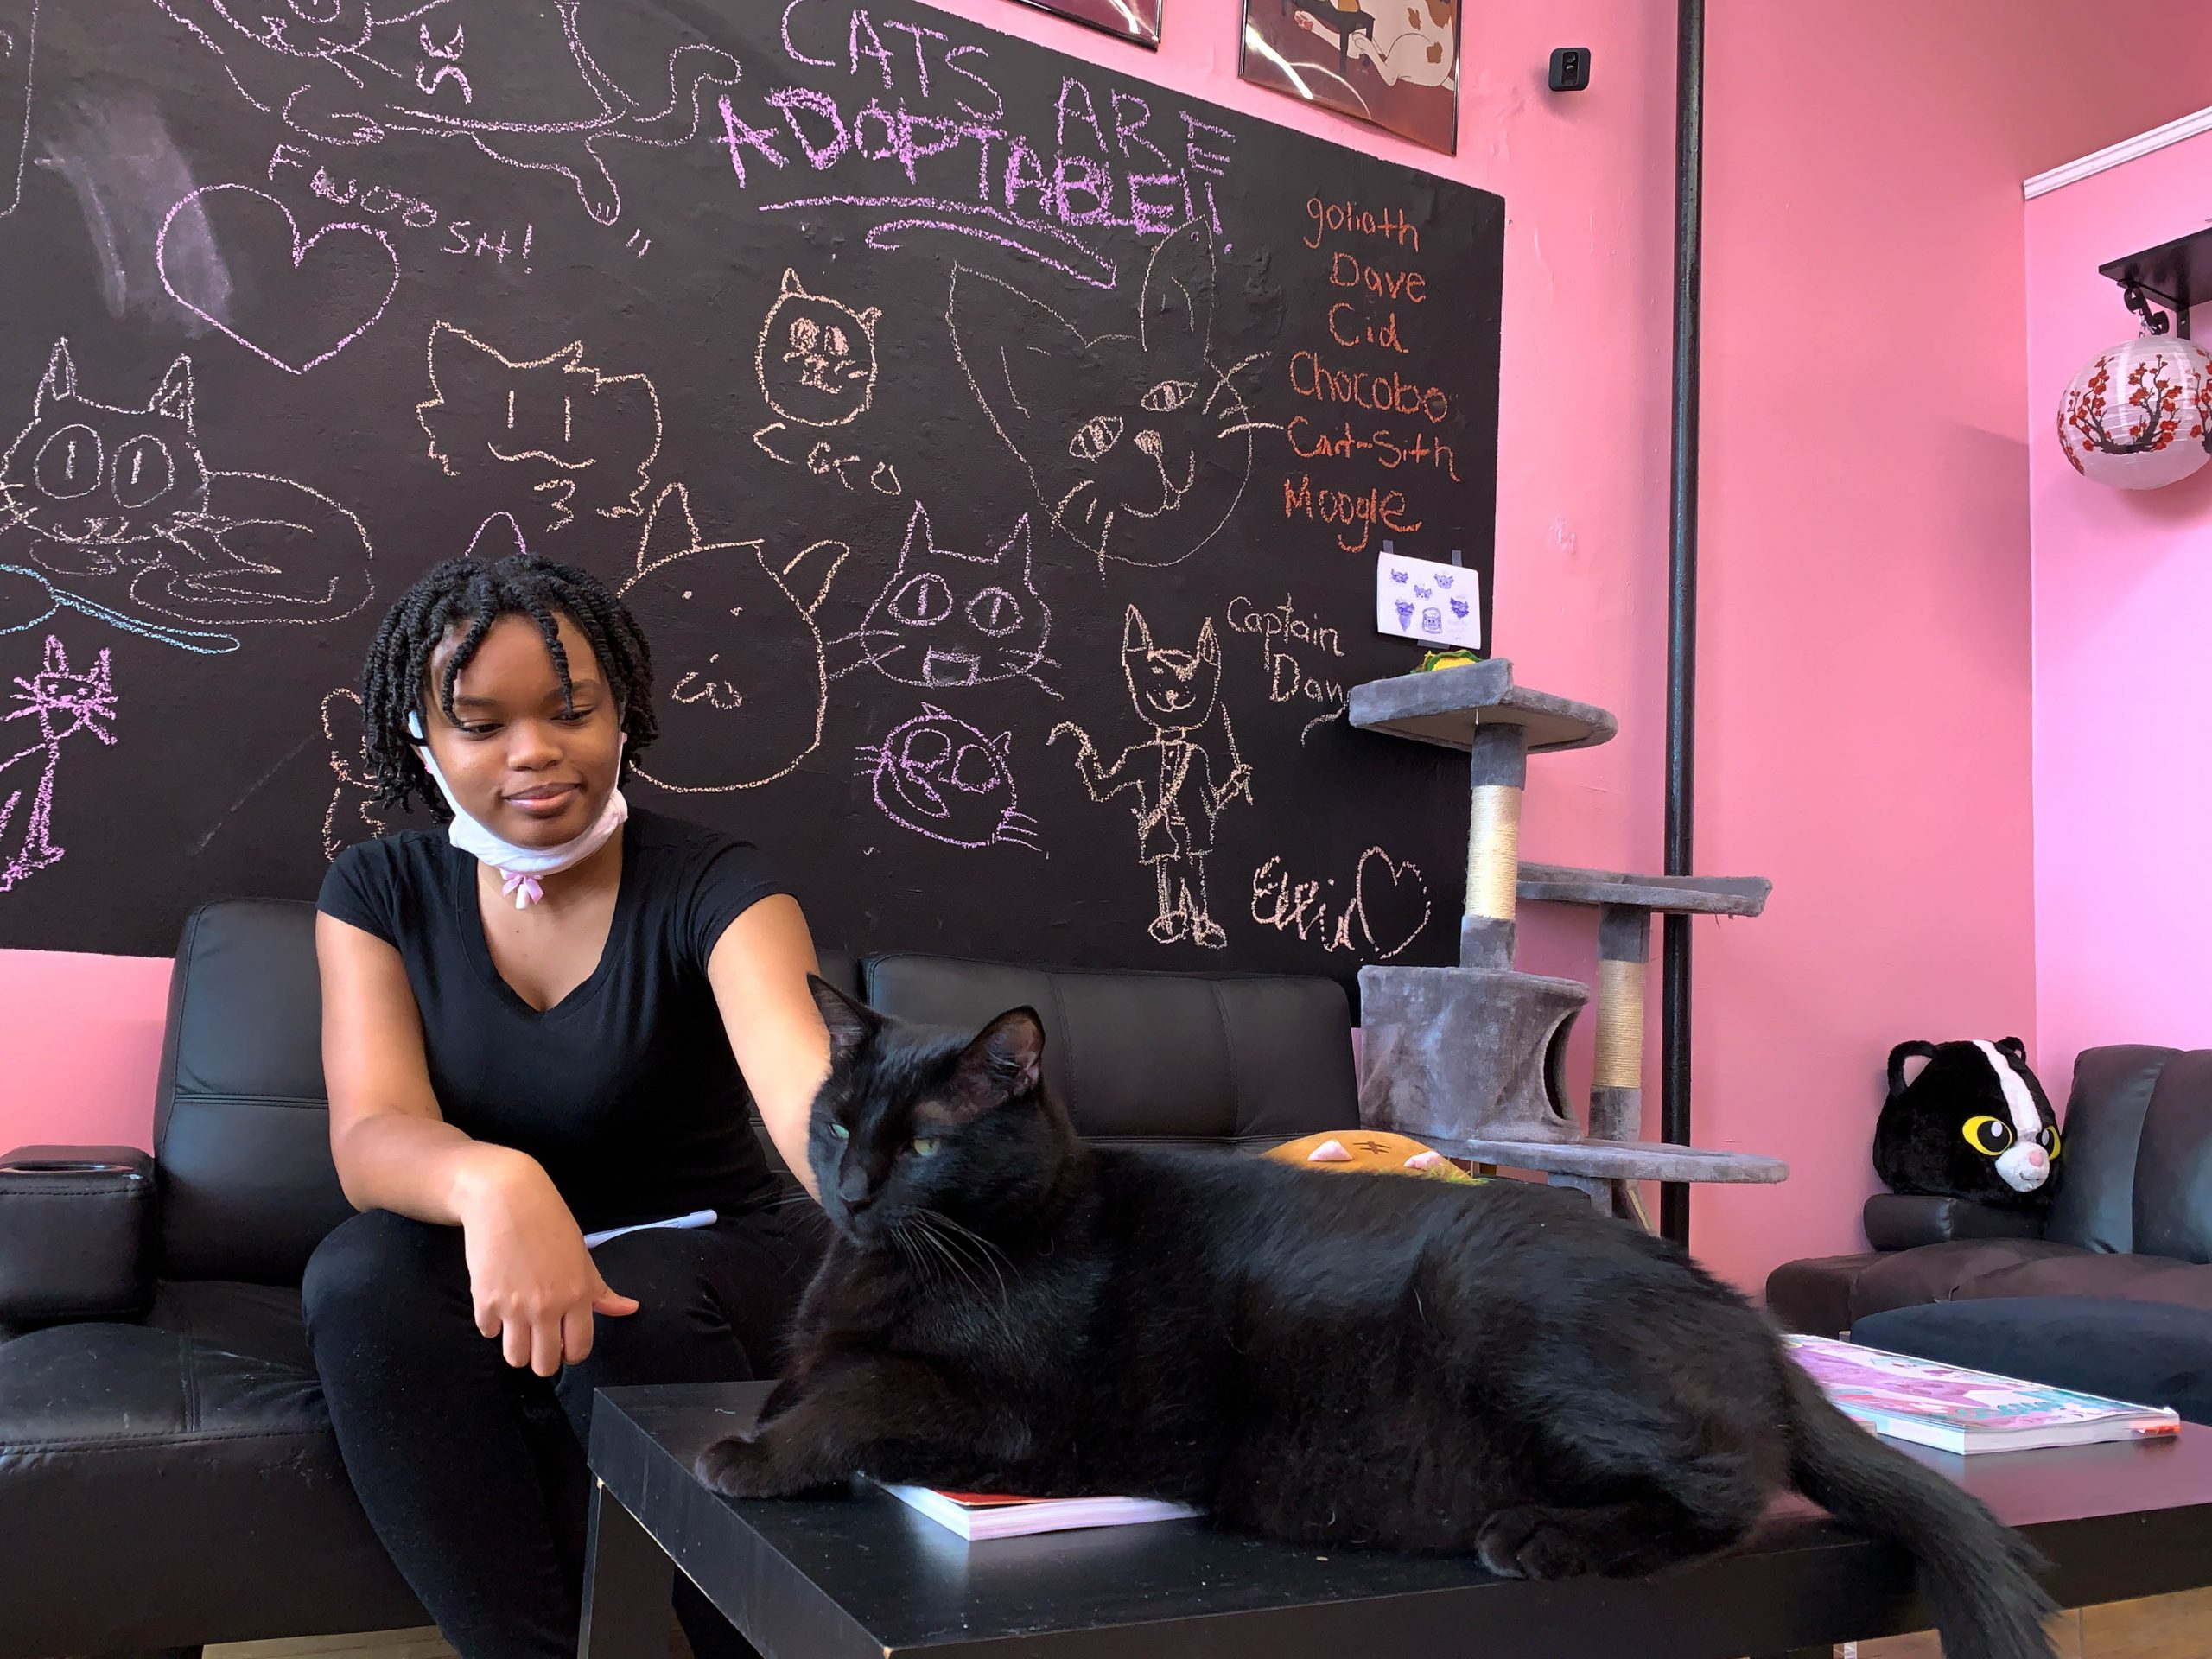 Kamanii Hicks, a server at the Luna Cafe, enjoys a break in the cat room while preparing to open the cafe.